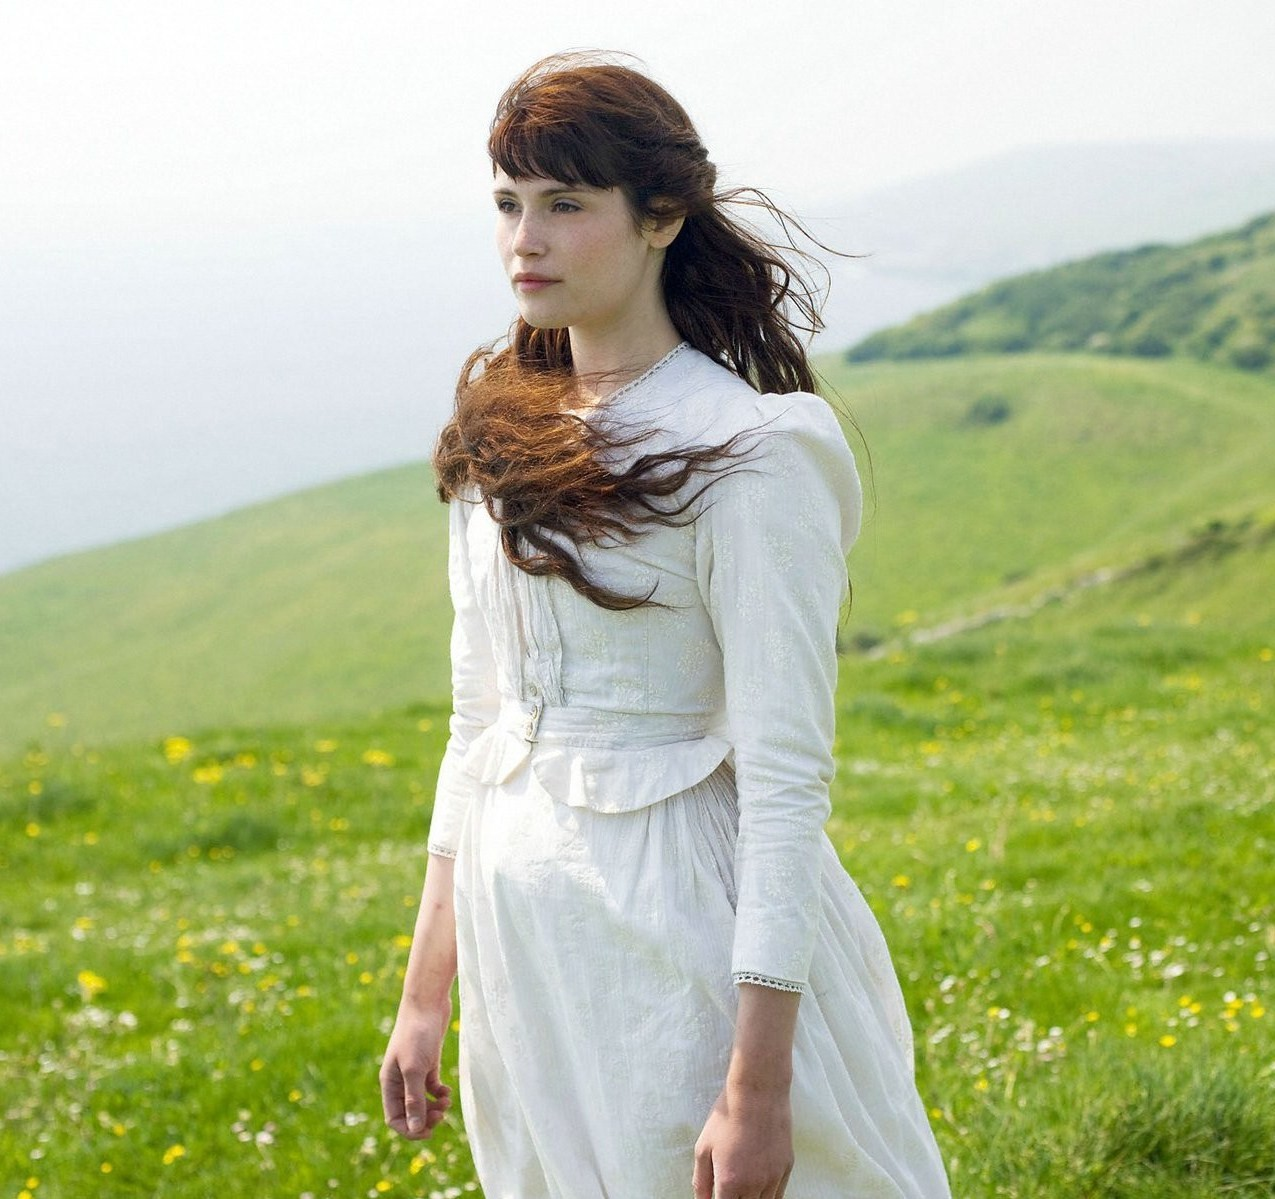 tess of duberville Melvyn bragg and guests discuss tess of the d'urbervilles by thomas hardy, originally serialised in the graphic in 1891 and, with some significant changes, published as a complete novel in 1892.